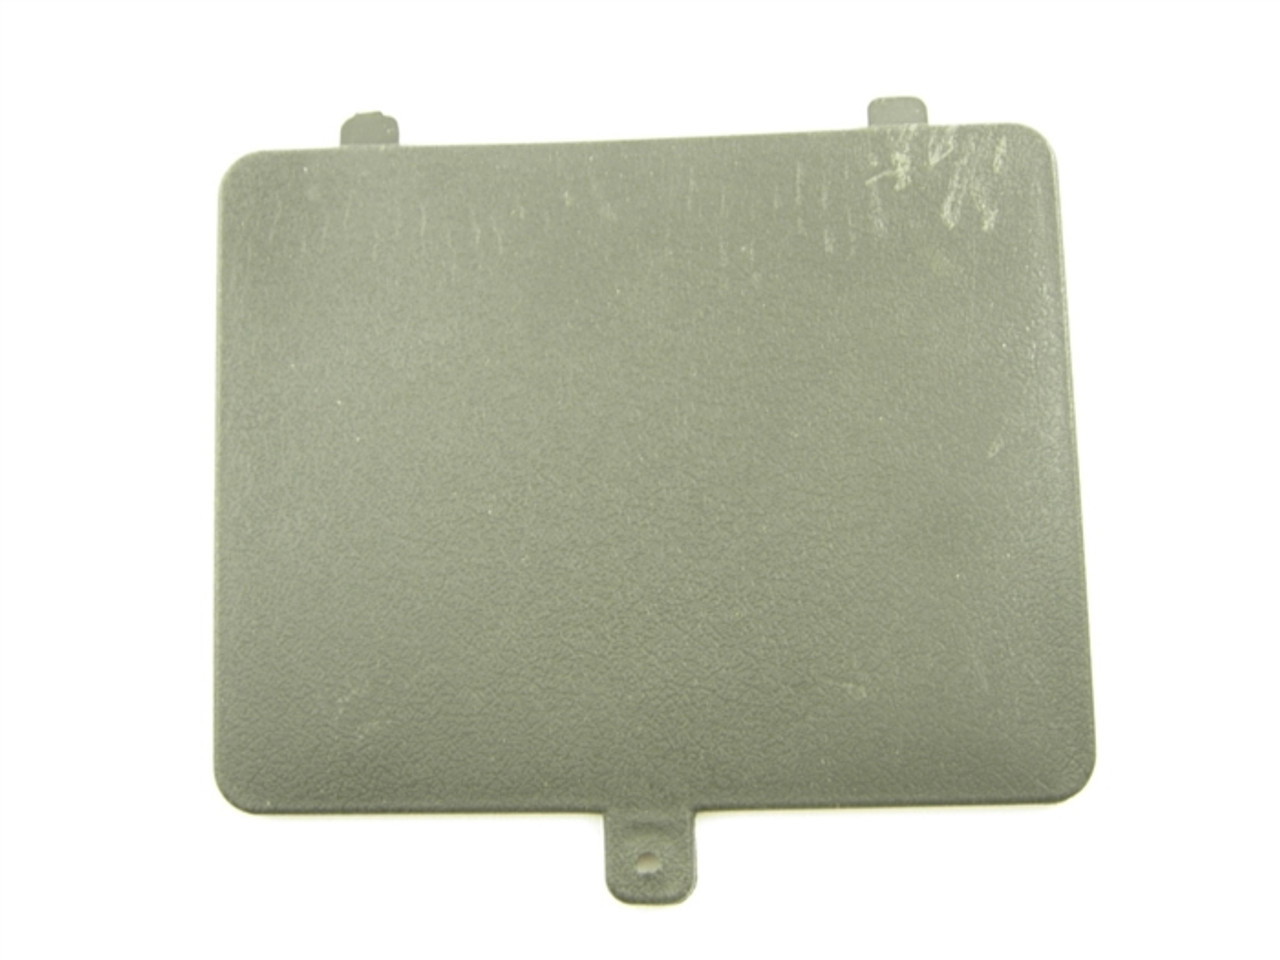 BATTERY COVER 12633-A147-5